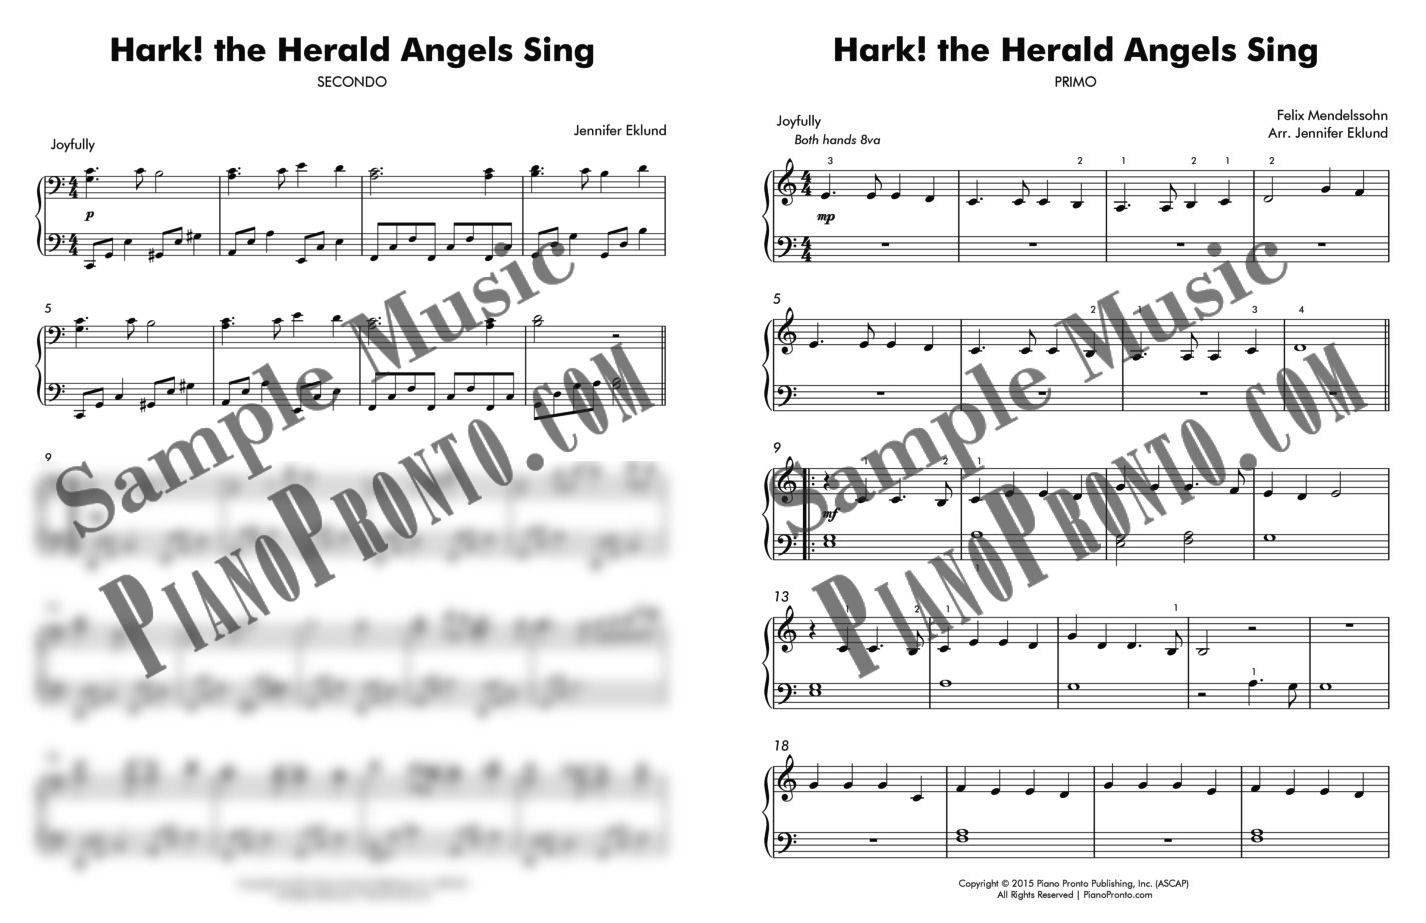 Hark! the Herald Angels Sing Duet (from